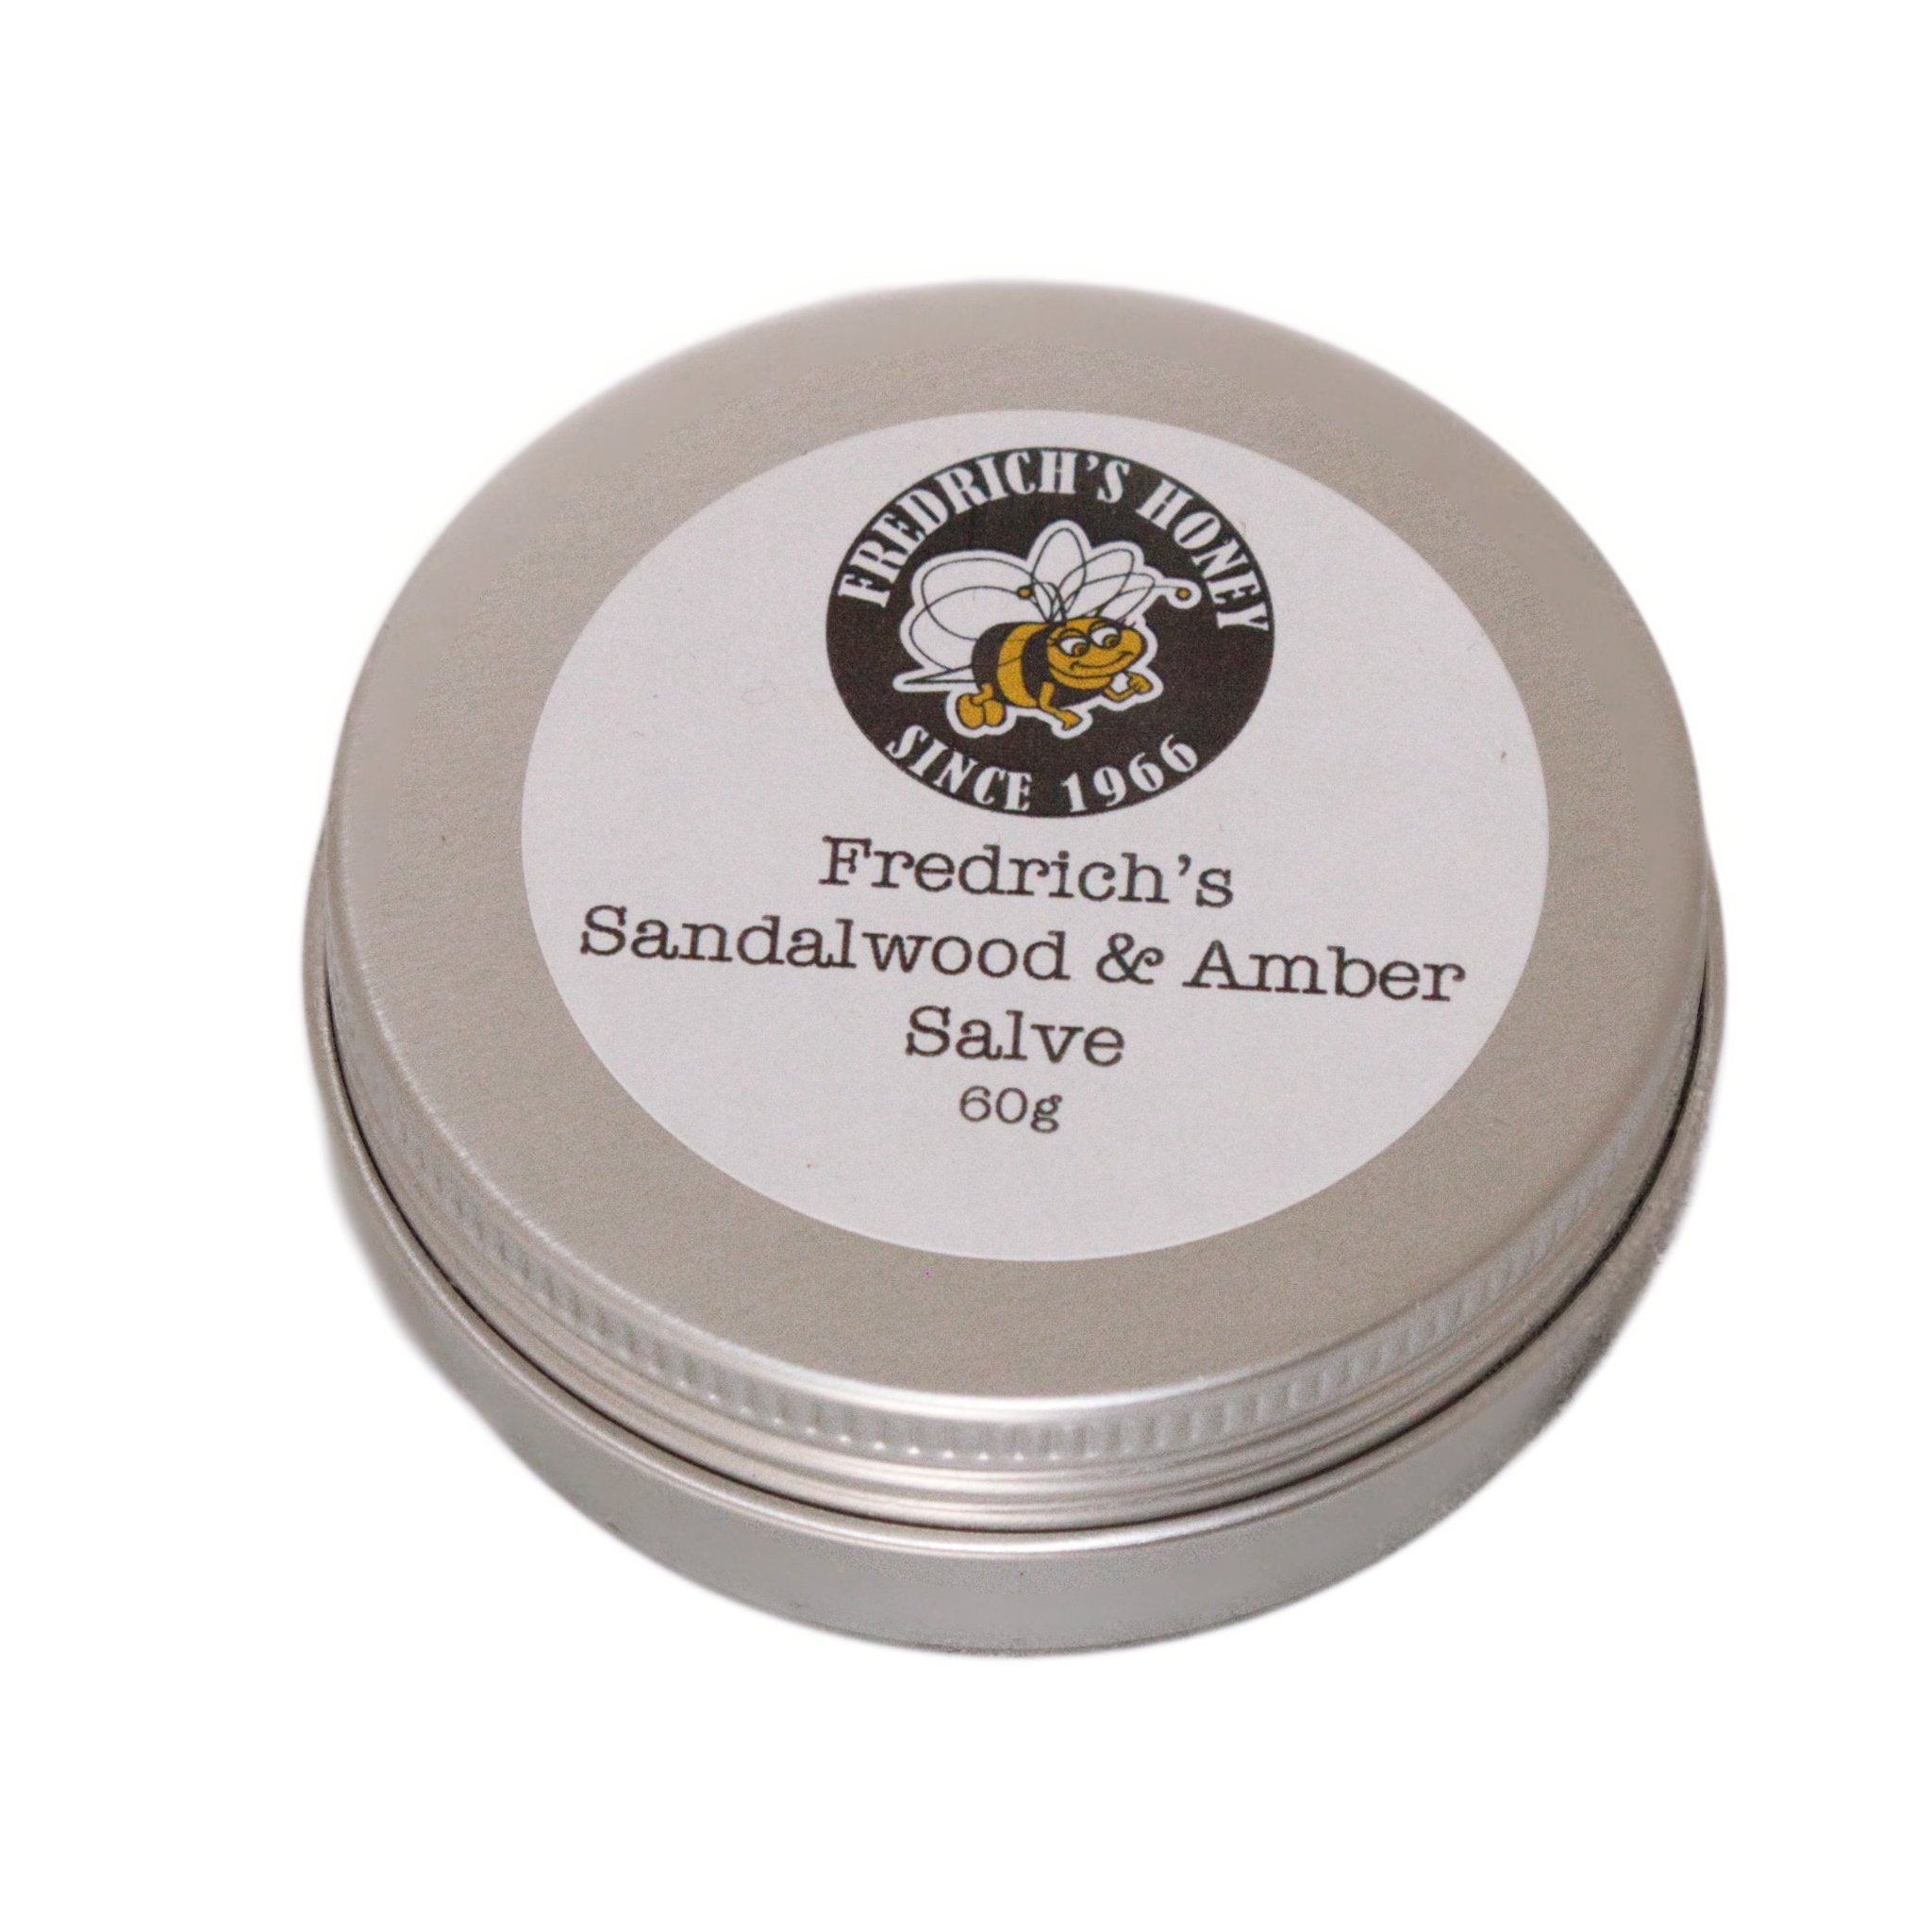 Sandalwood and Amber Salve